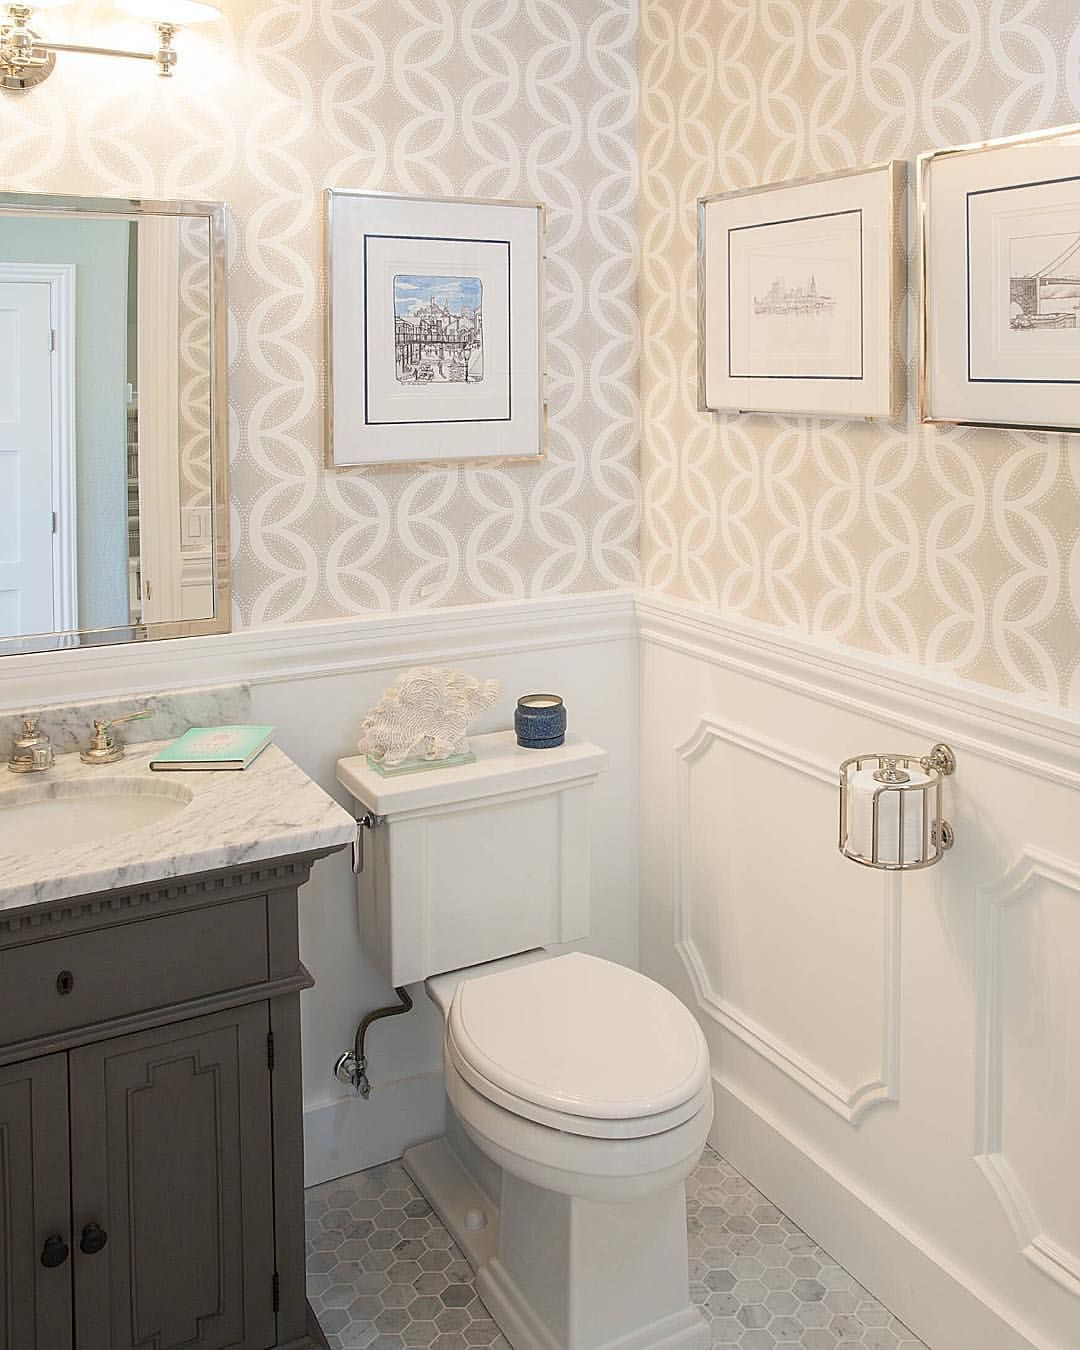 Interior Design On Instagram I Just Love How Wallpaper Can Add So Much Interest To A Simple Powder Room B Bathrooms Remodel Bathroom Makeover Bathroom Decor